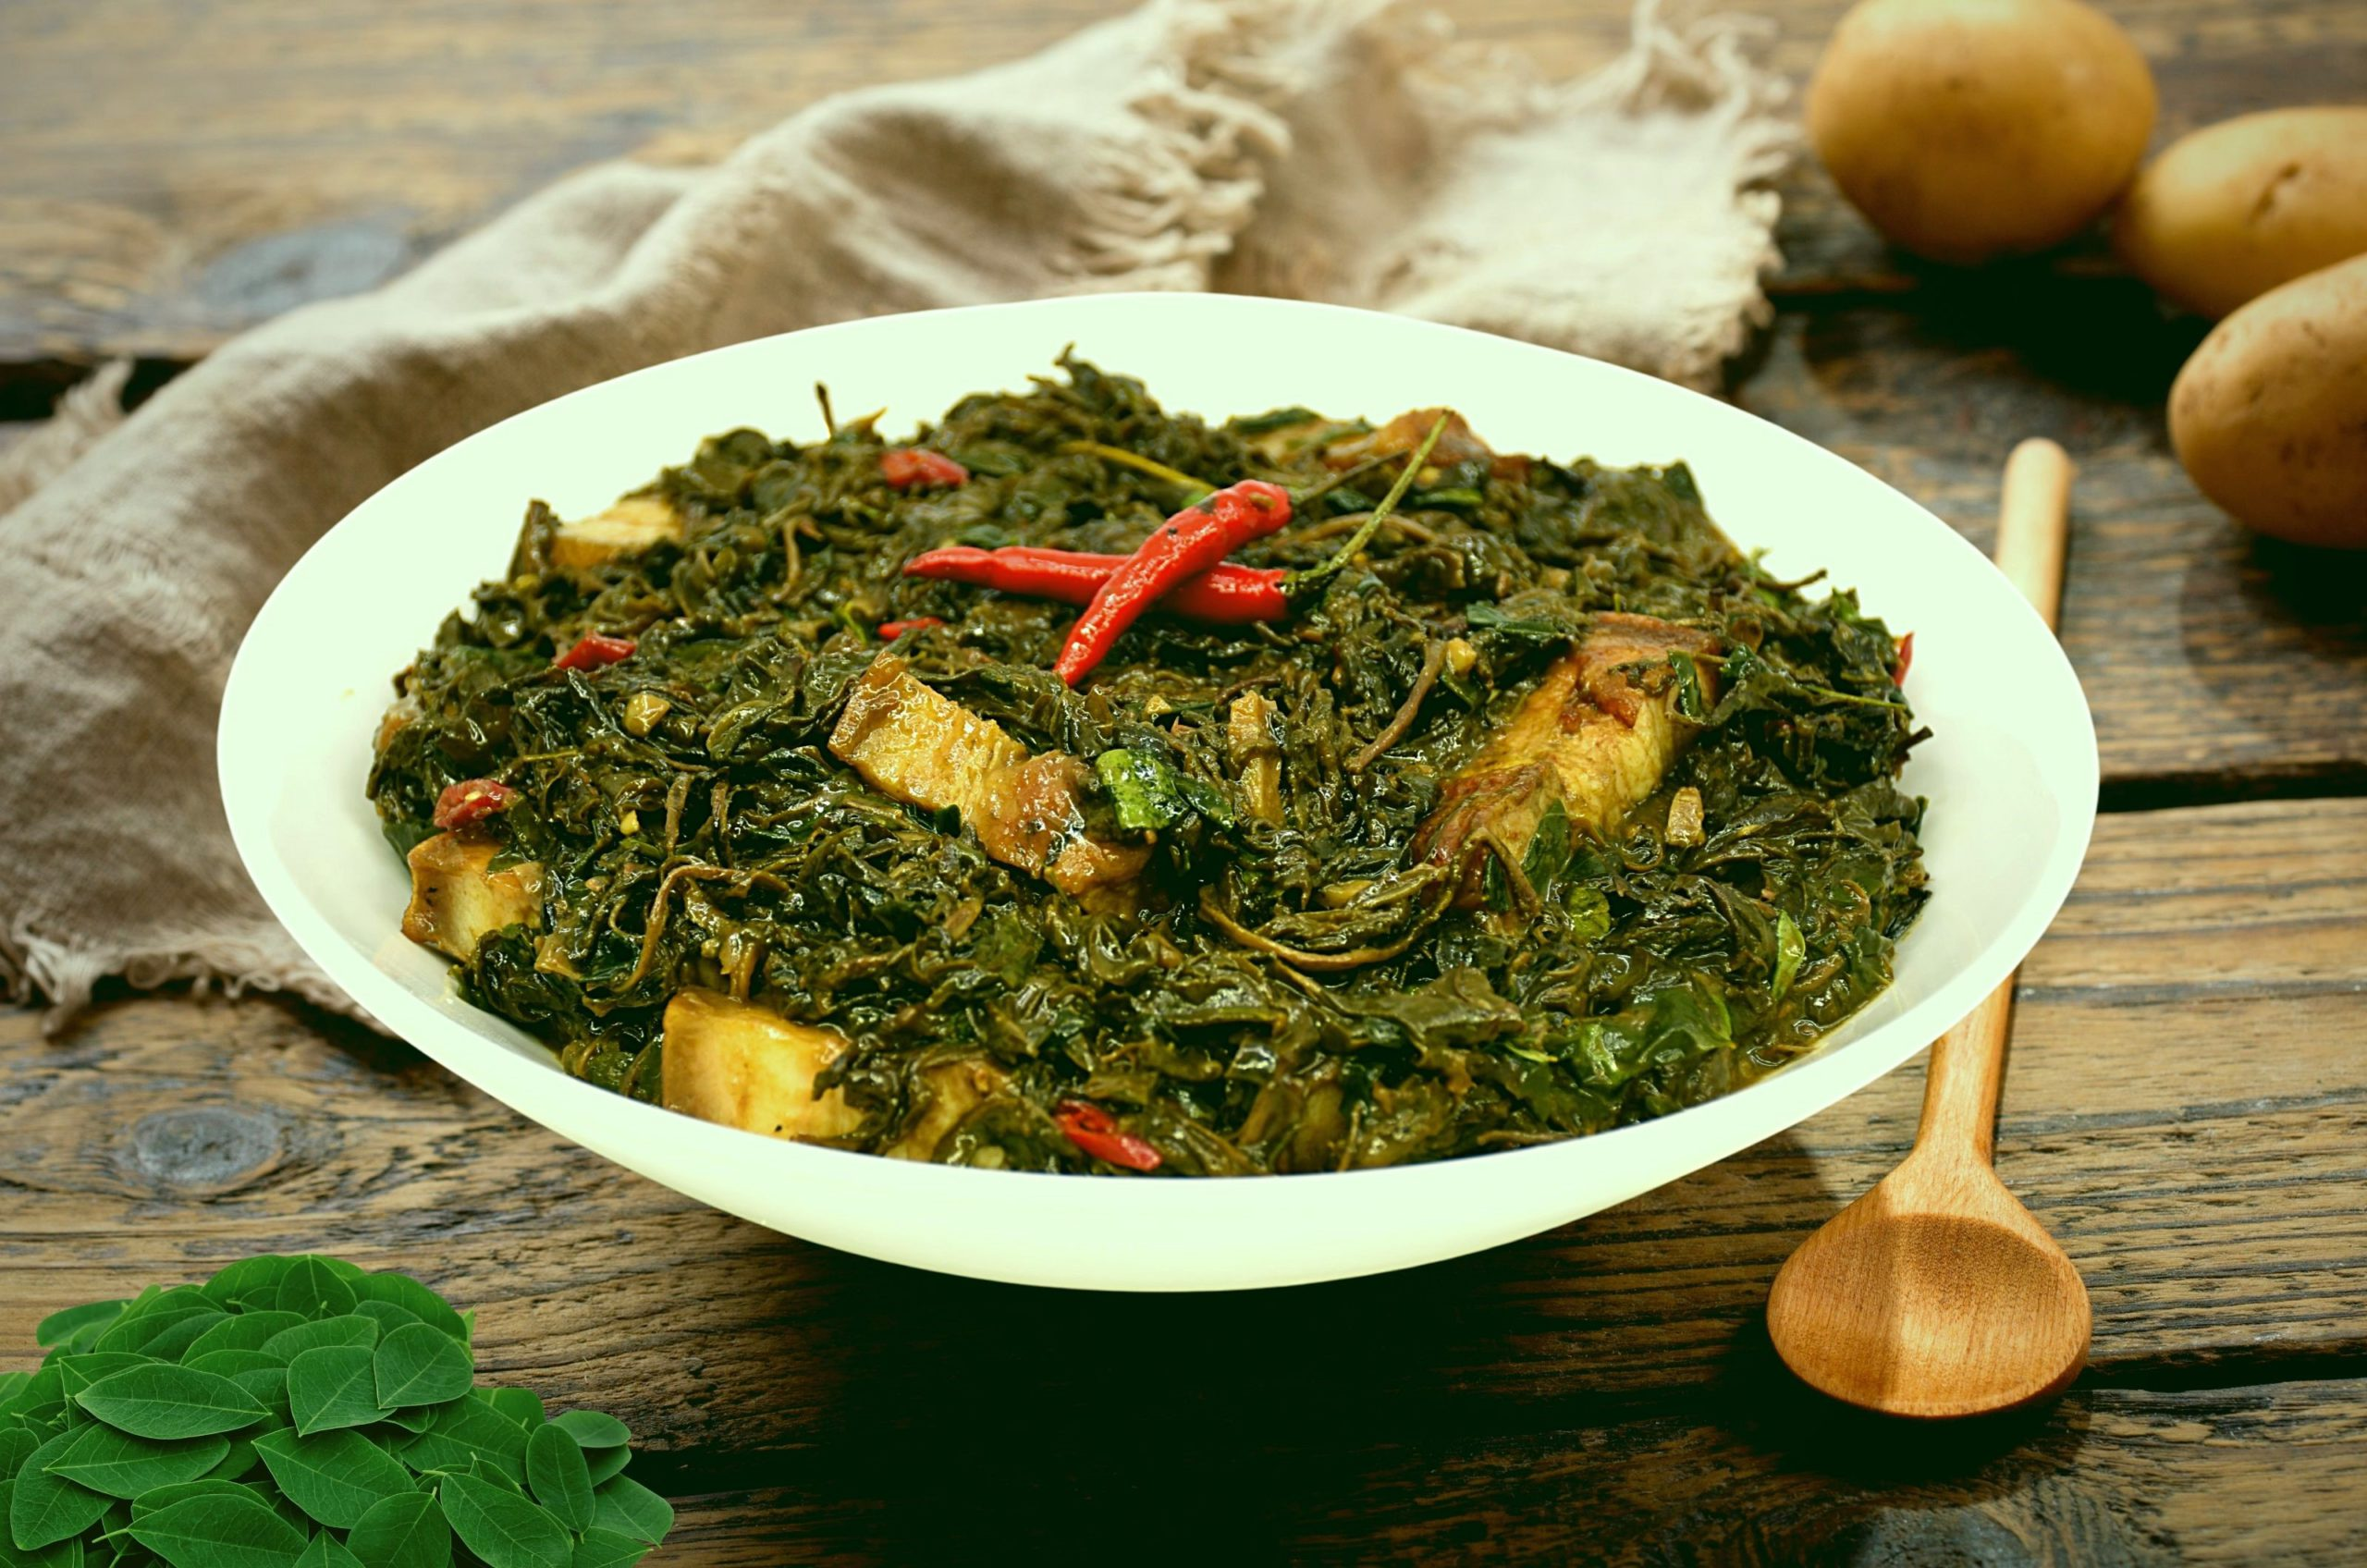 Laing with Malunggay Leaves